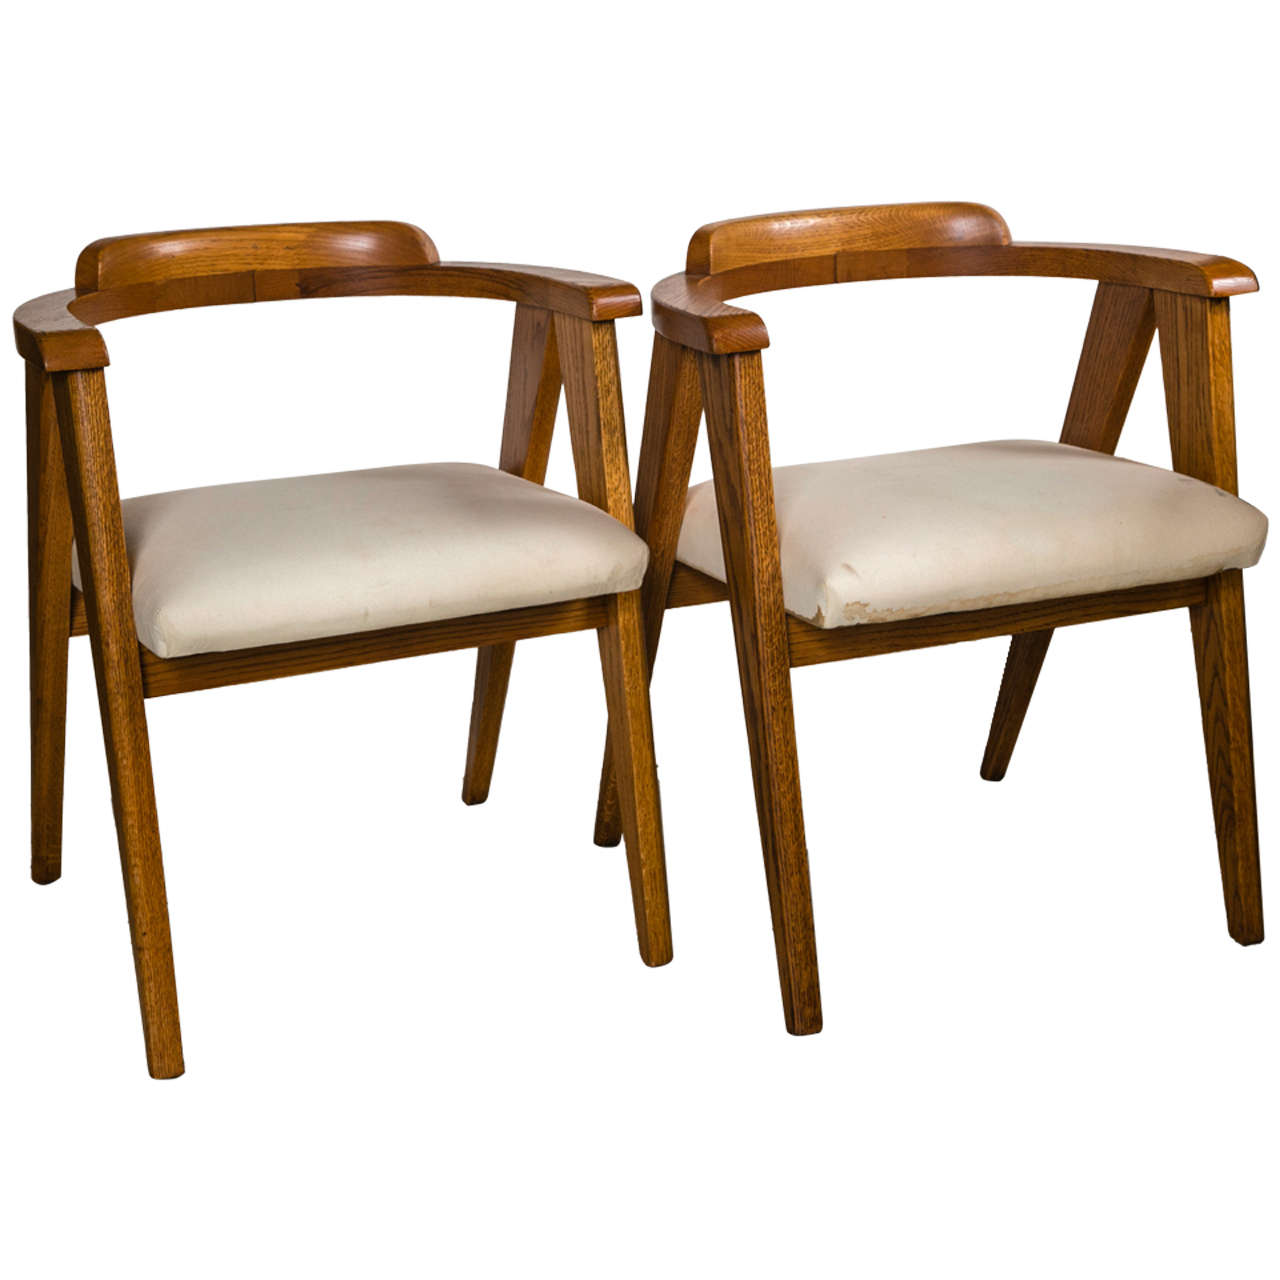 French Wooden Chairs ~ French wood chairs at stdibs